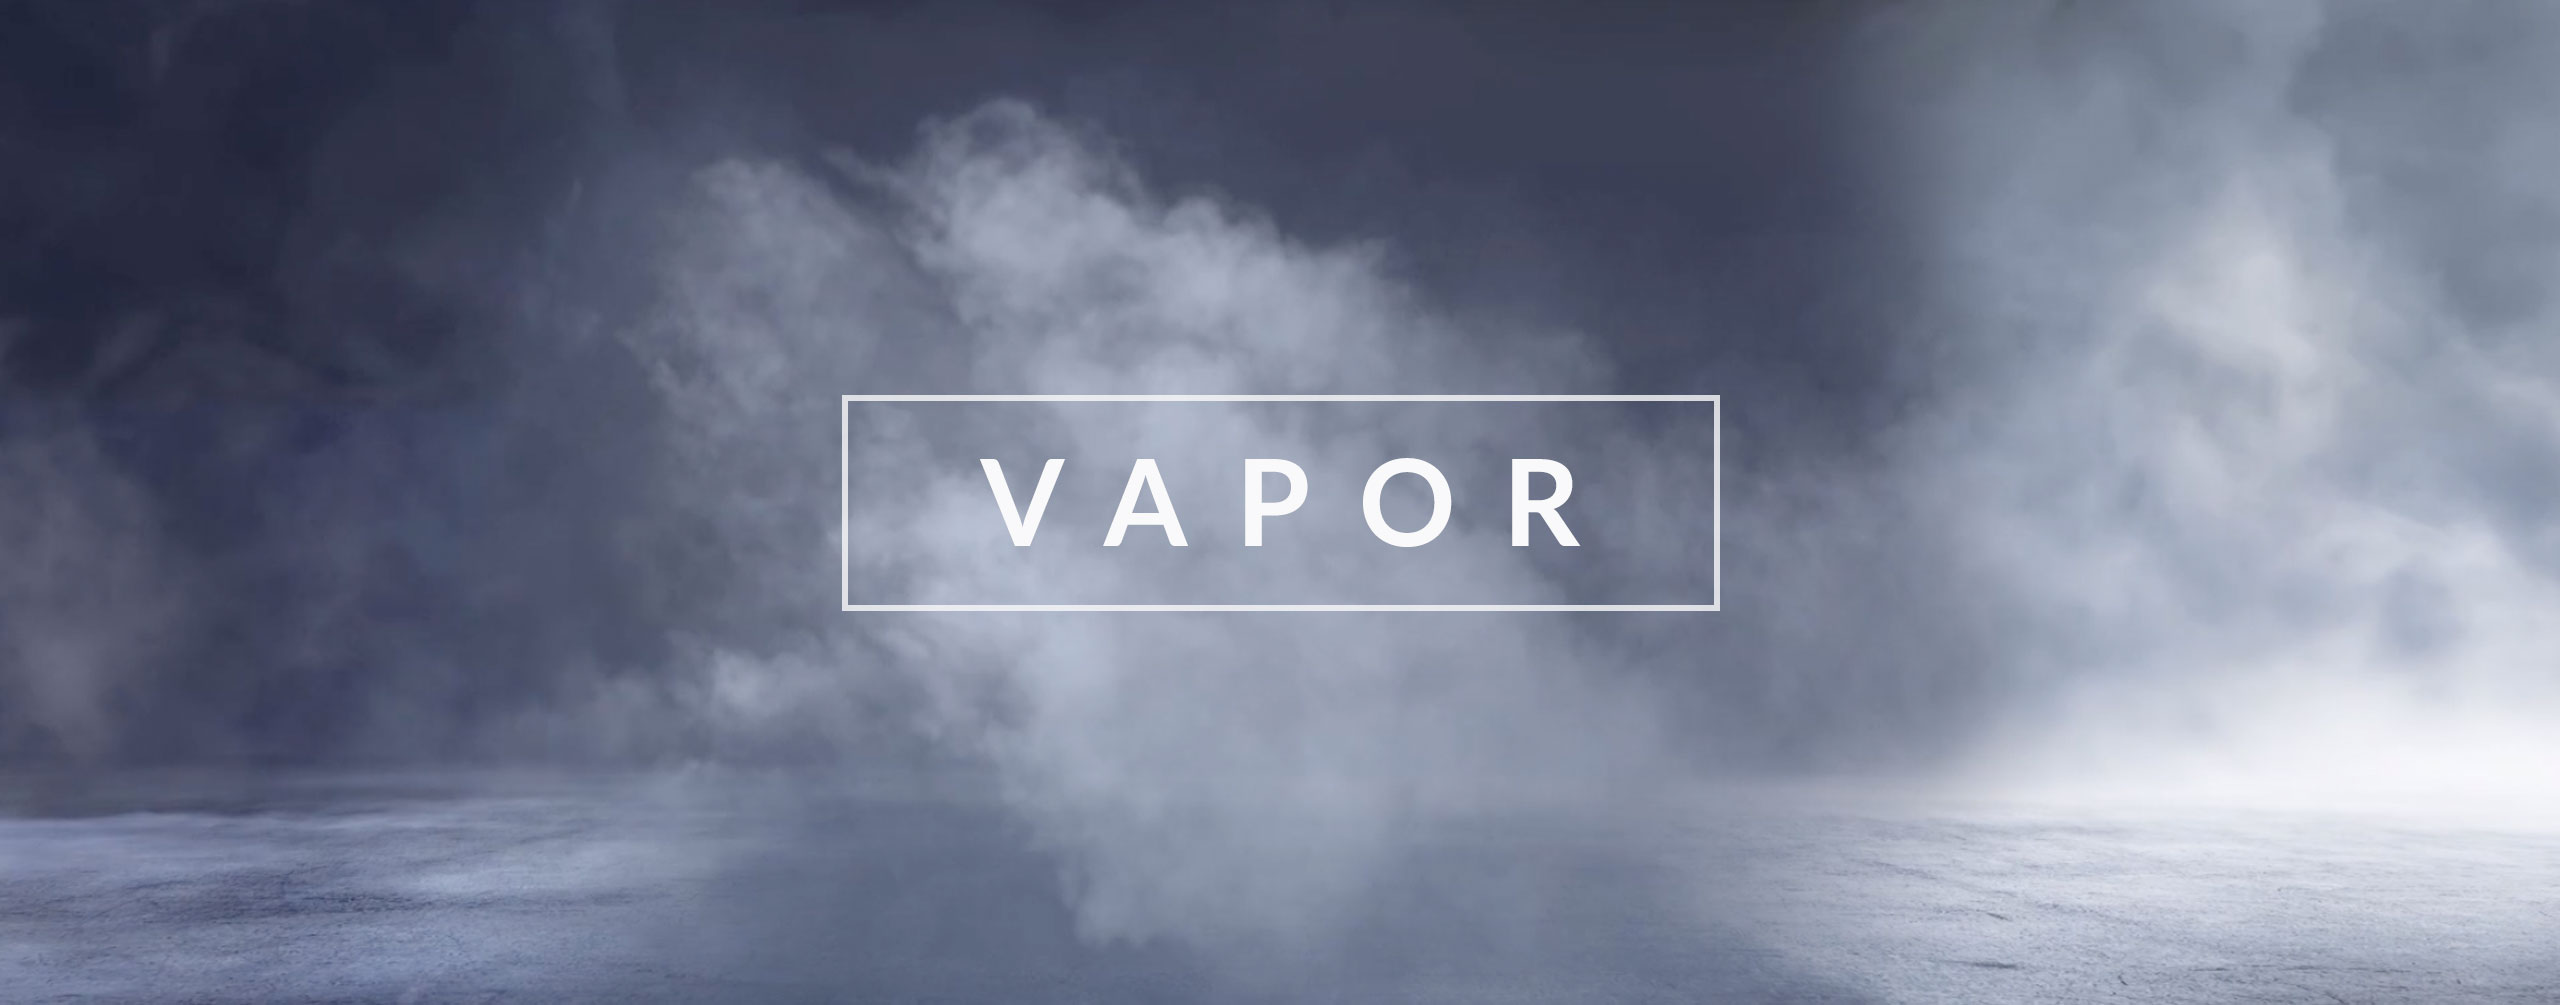 Vapor - Fog and Smoke Effects